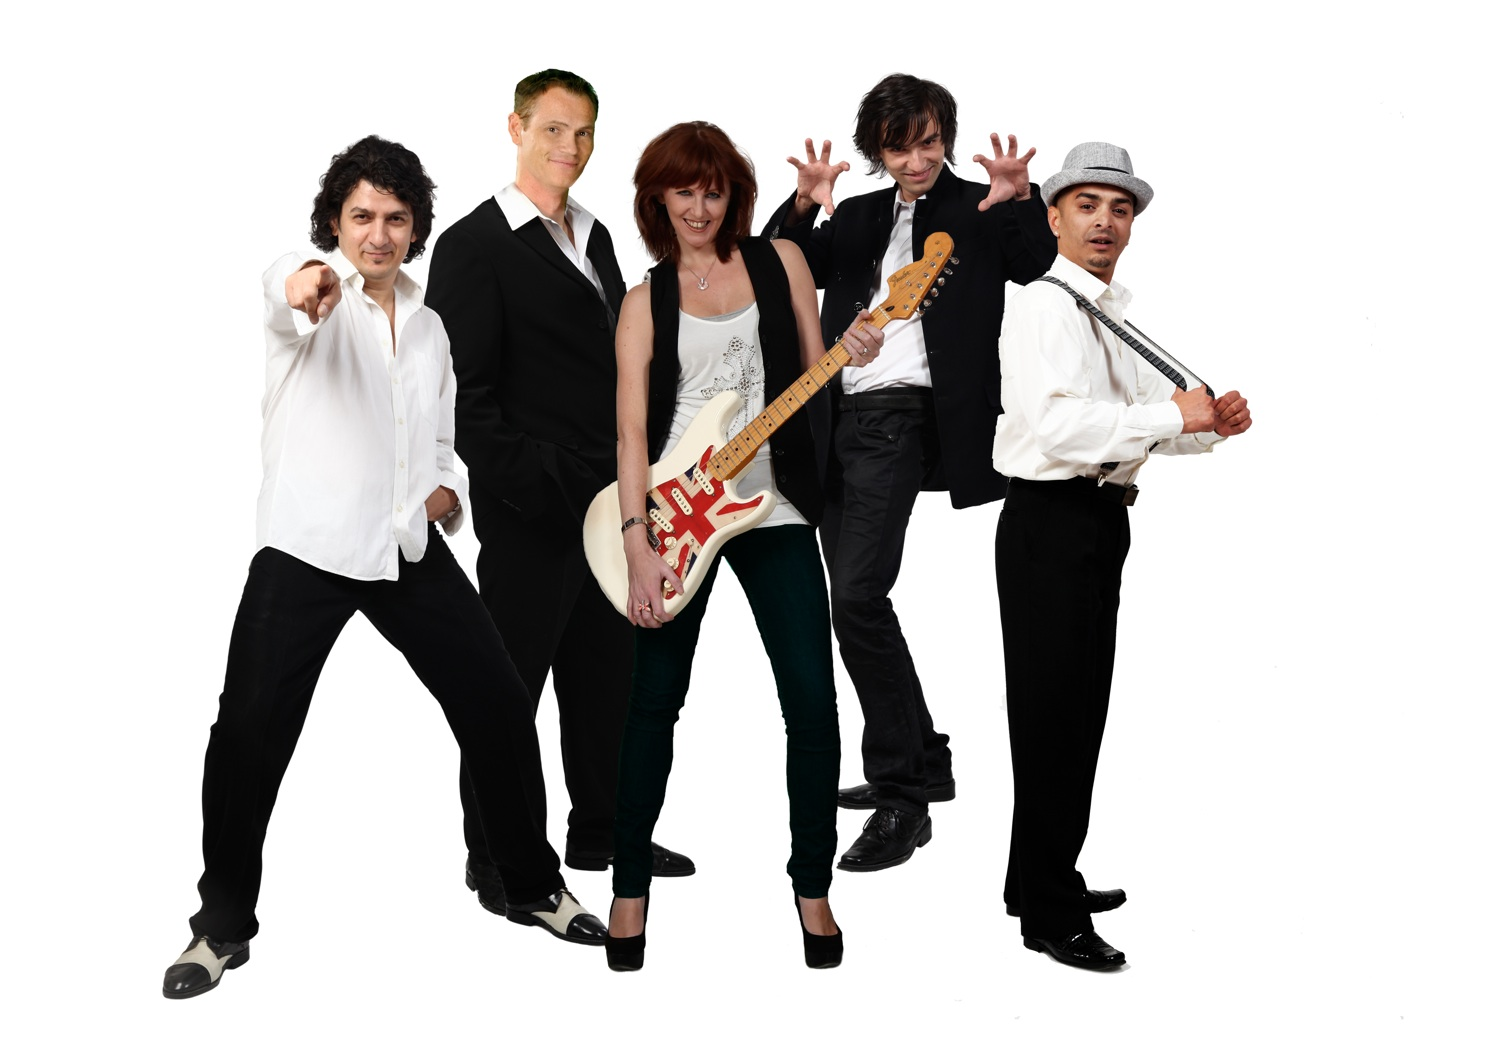 50s Band, 60s Band, 70s Band, 80s Band, Function Band, Pop Band, Rock Band, Rock n Roll Band, Soul Band #3360 Image